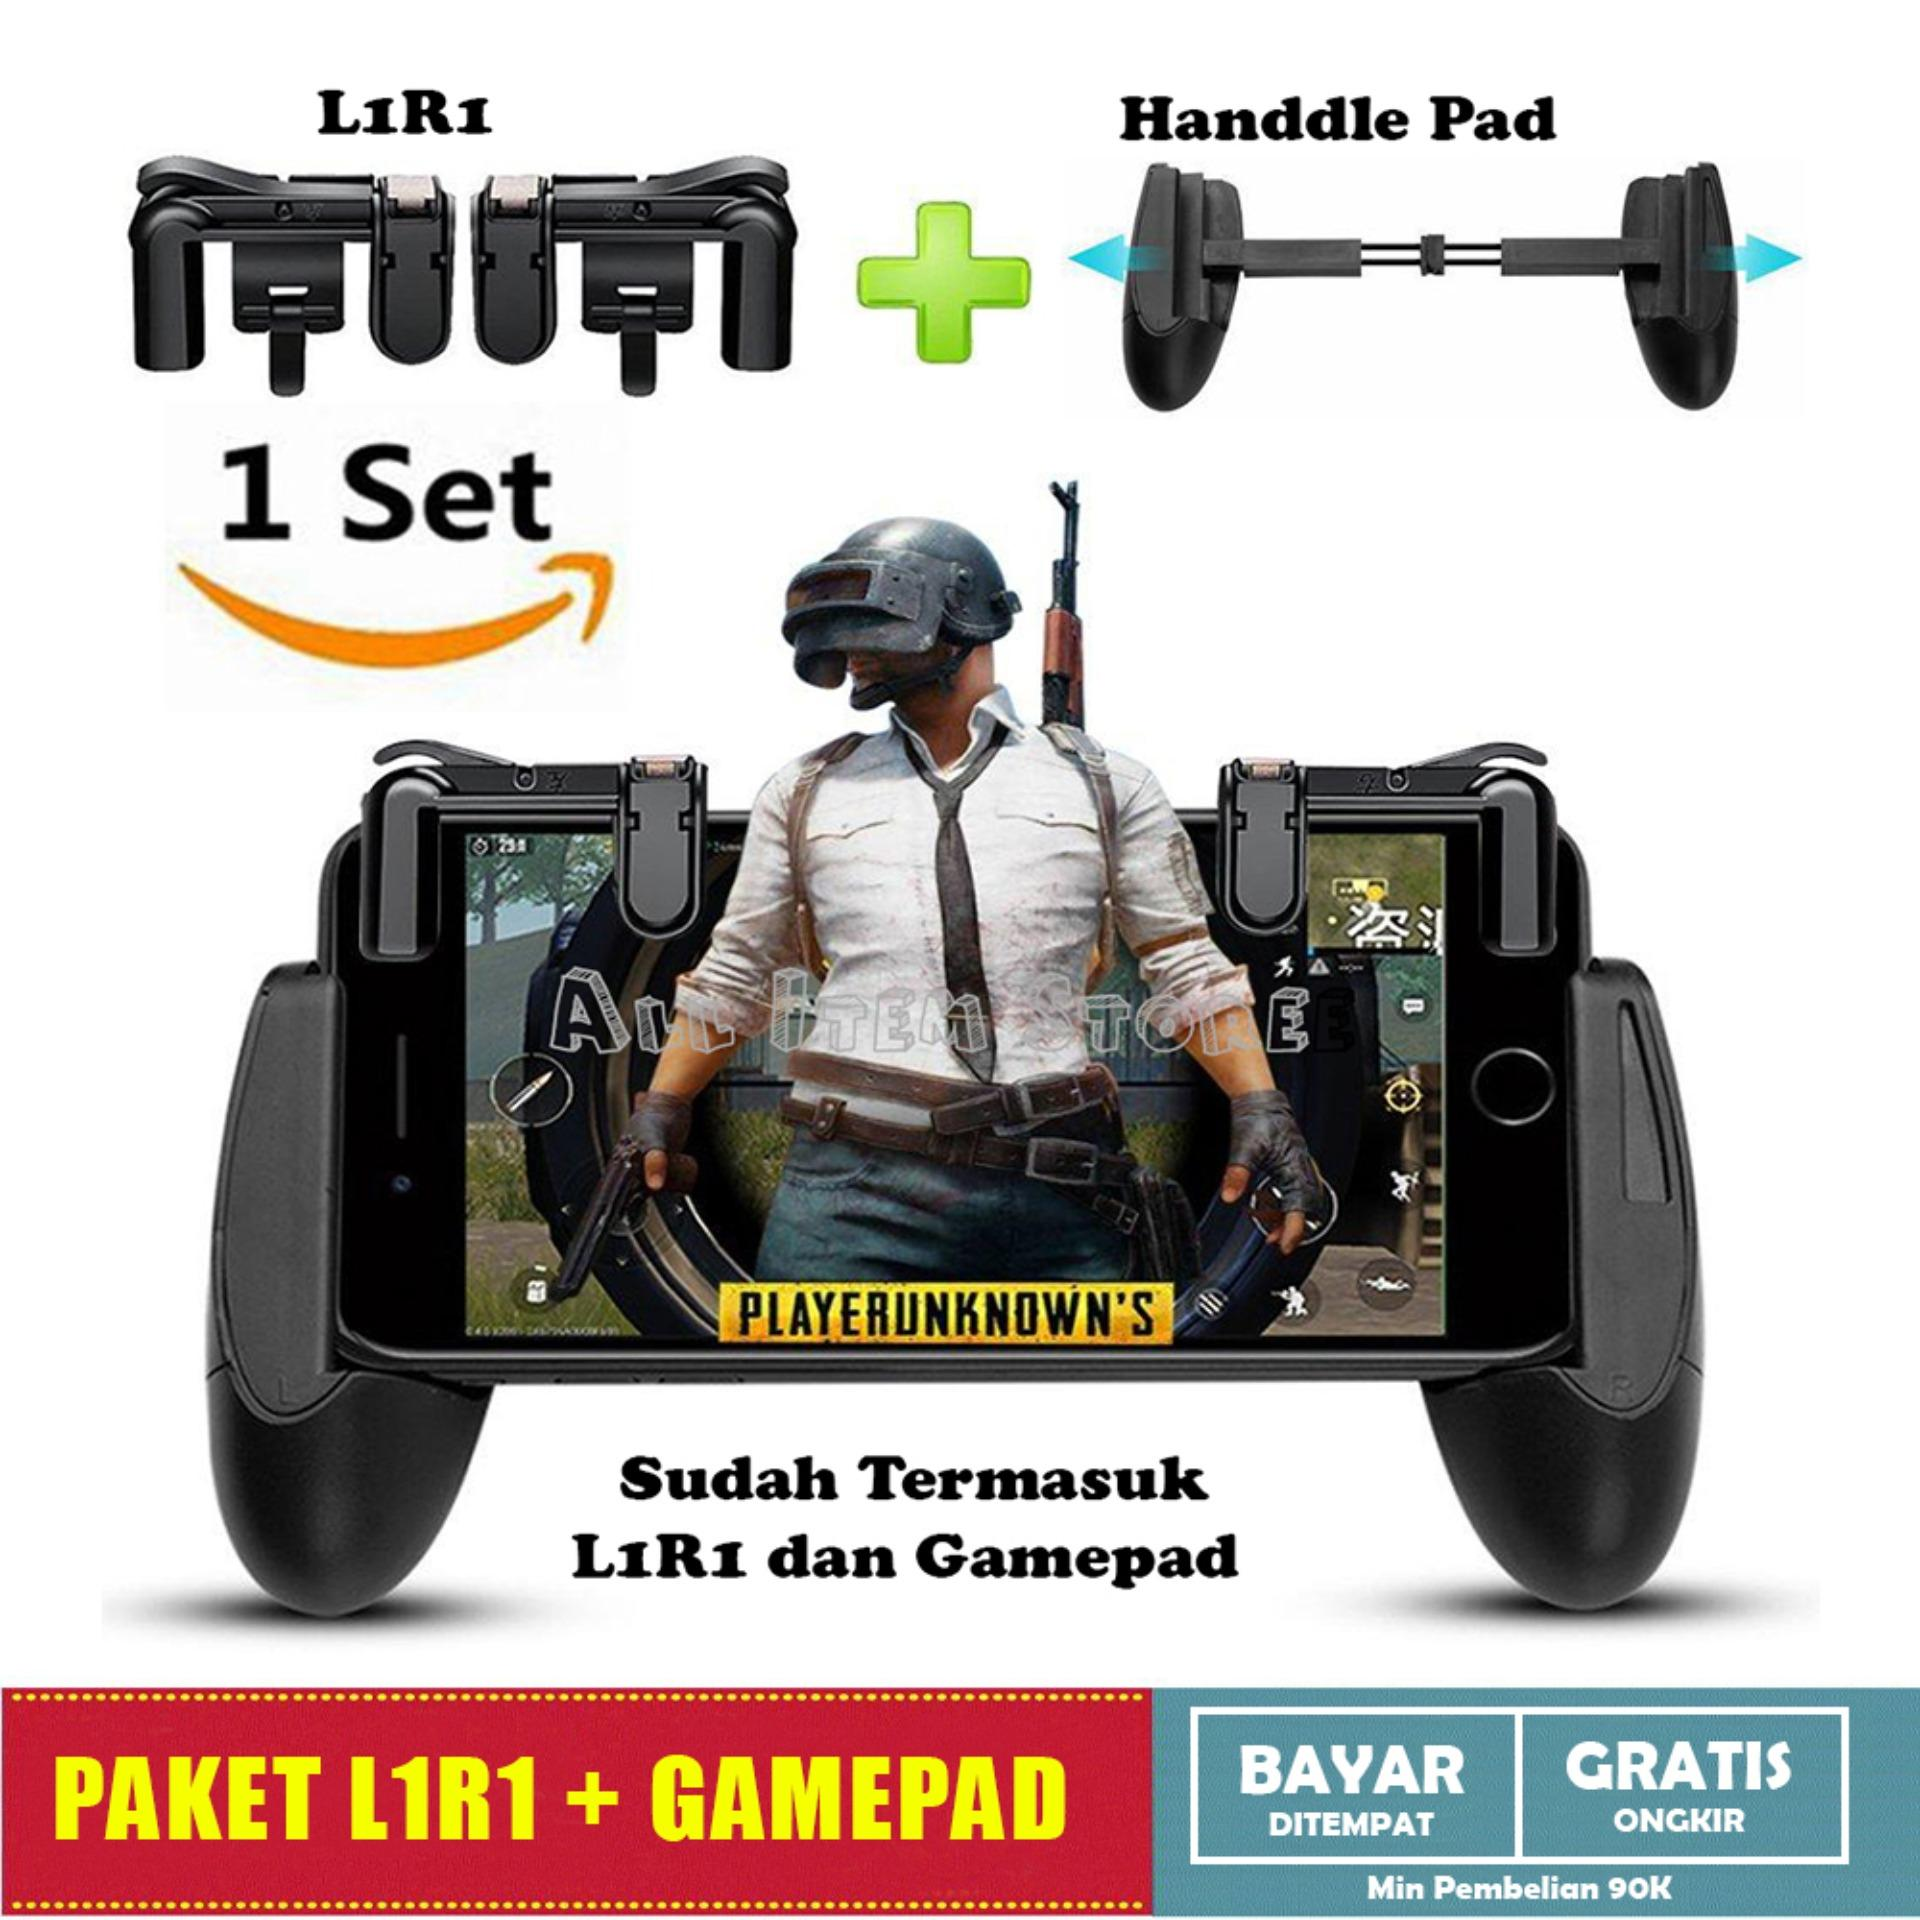 Paket 1 Set Button L1R1 Shooter + Gampad PUBG Mobile Joystick Rule Of Survival Free Fire - Hitam